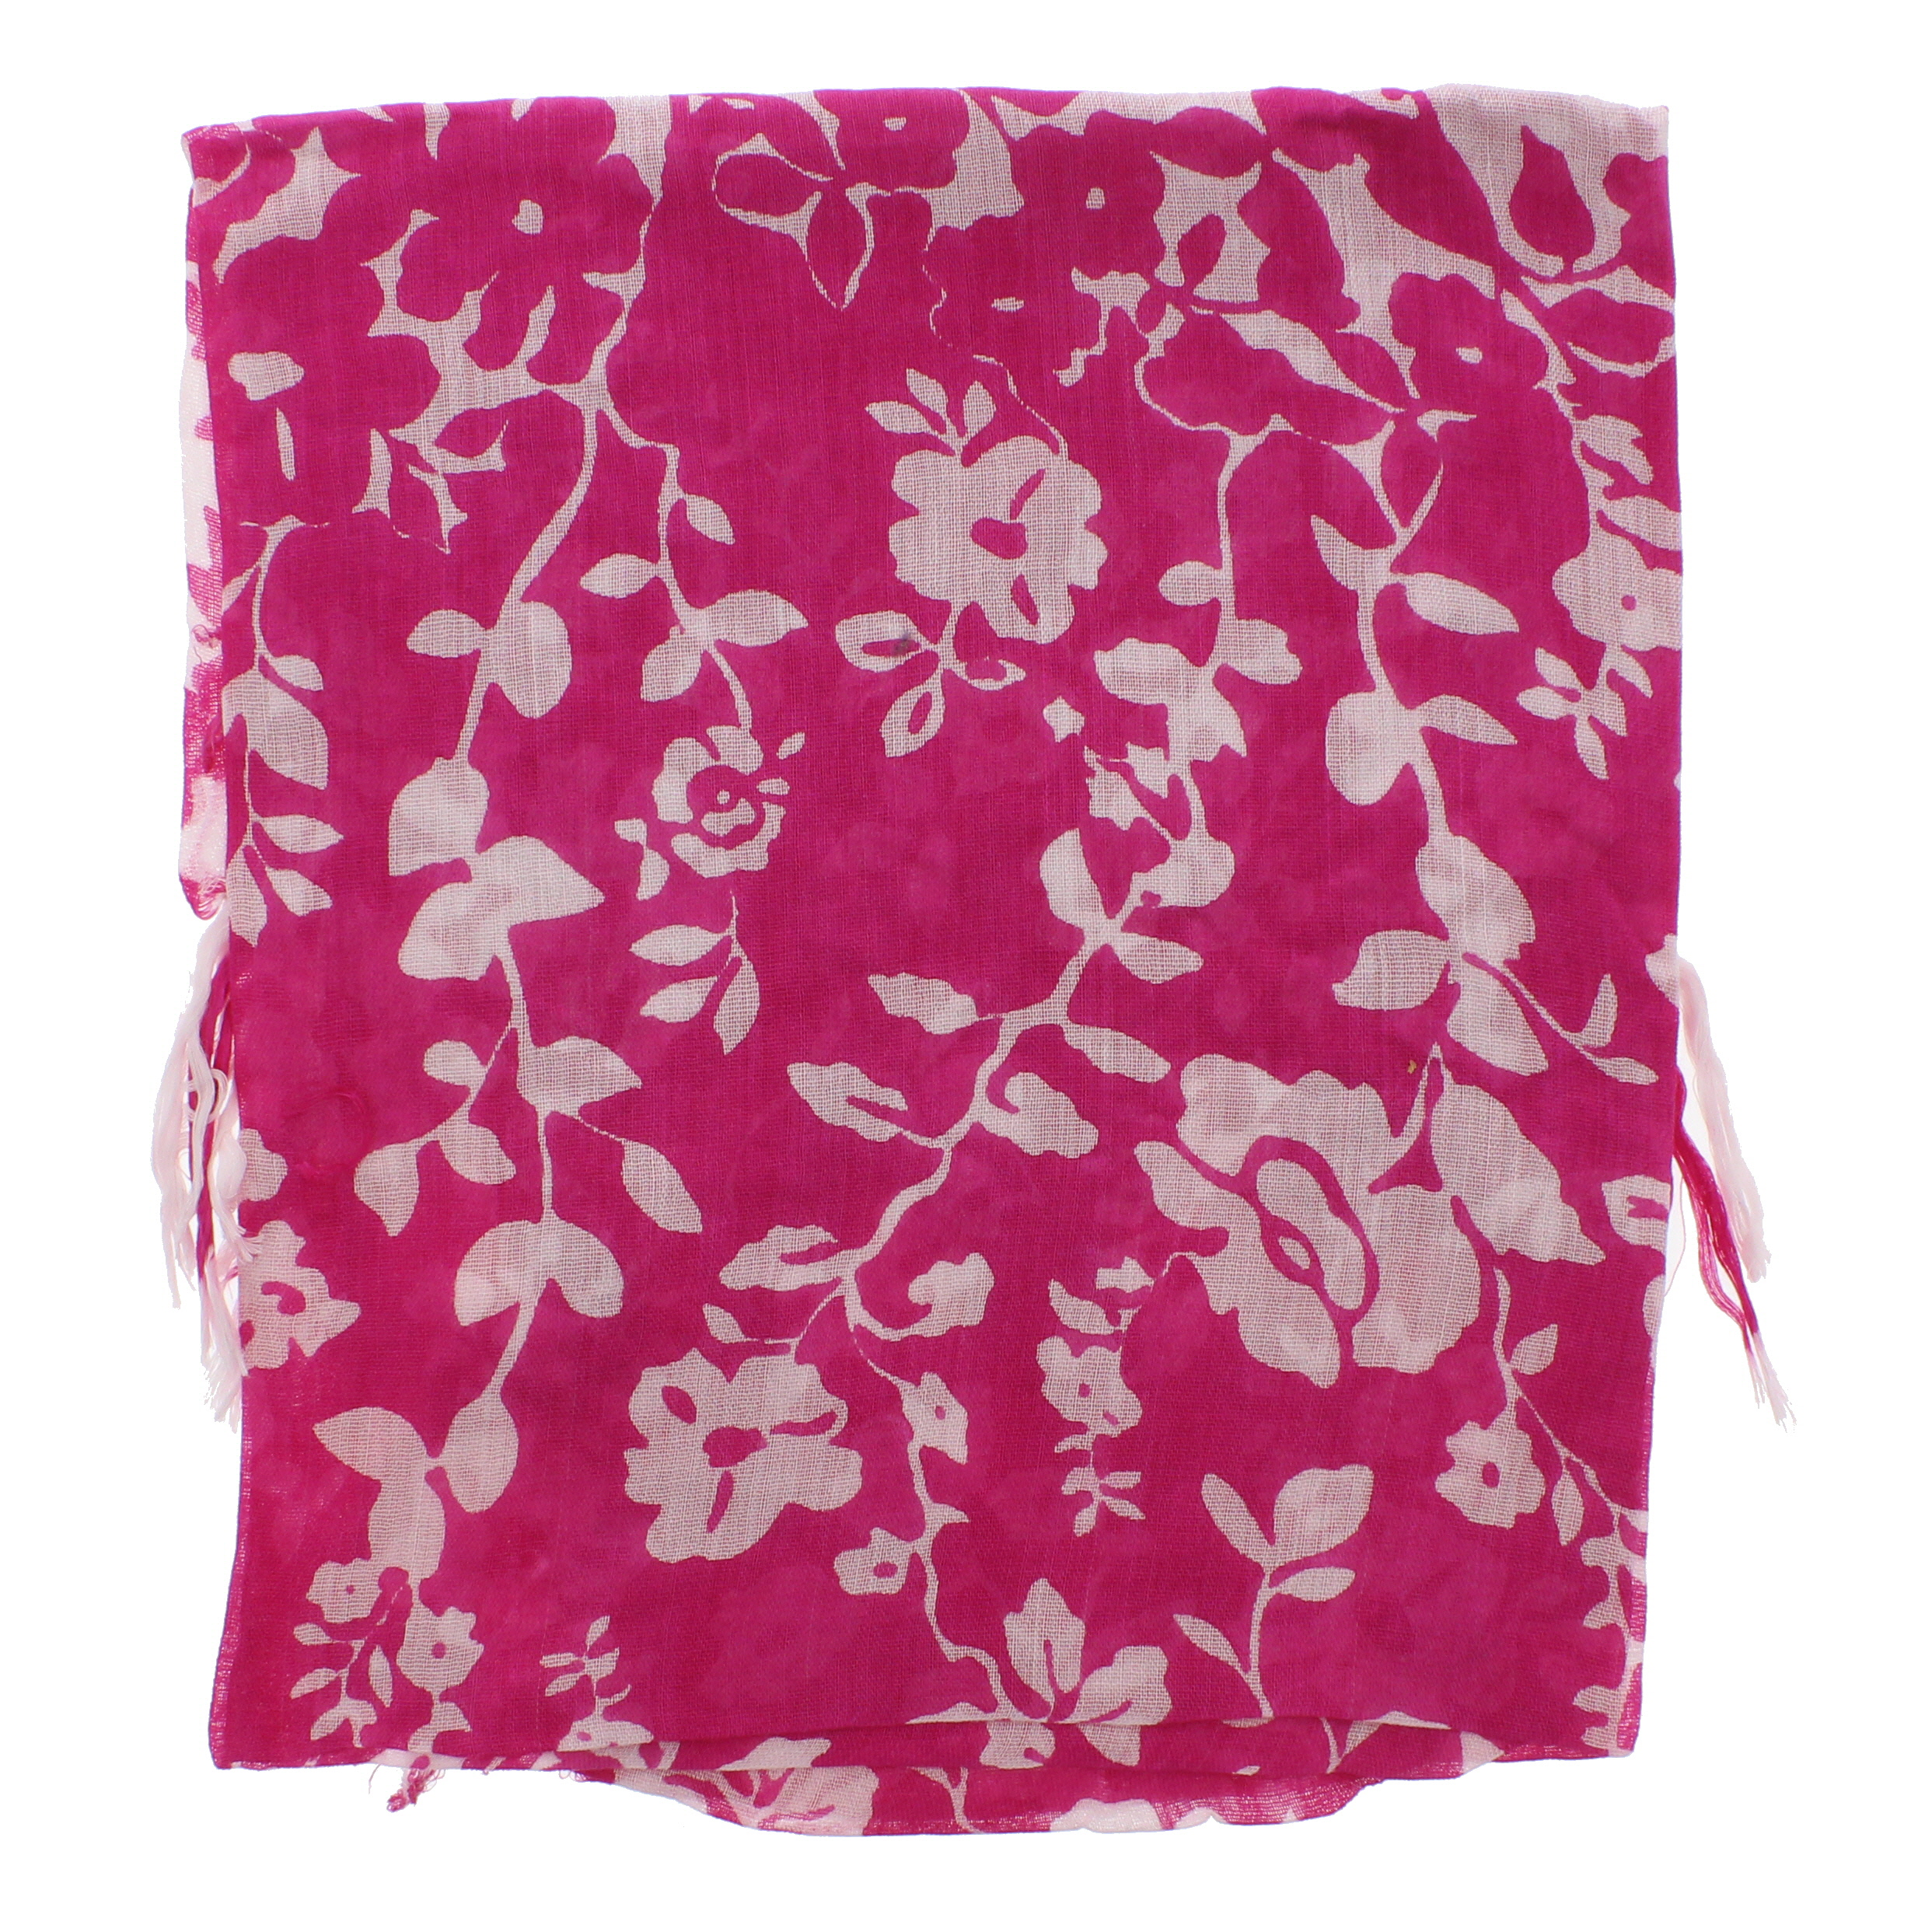 Zac/'s Alter Ego Long Lightweight Two Tone Floral Print Square Scarf with Tassels